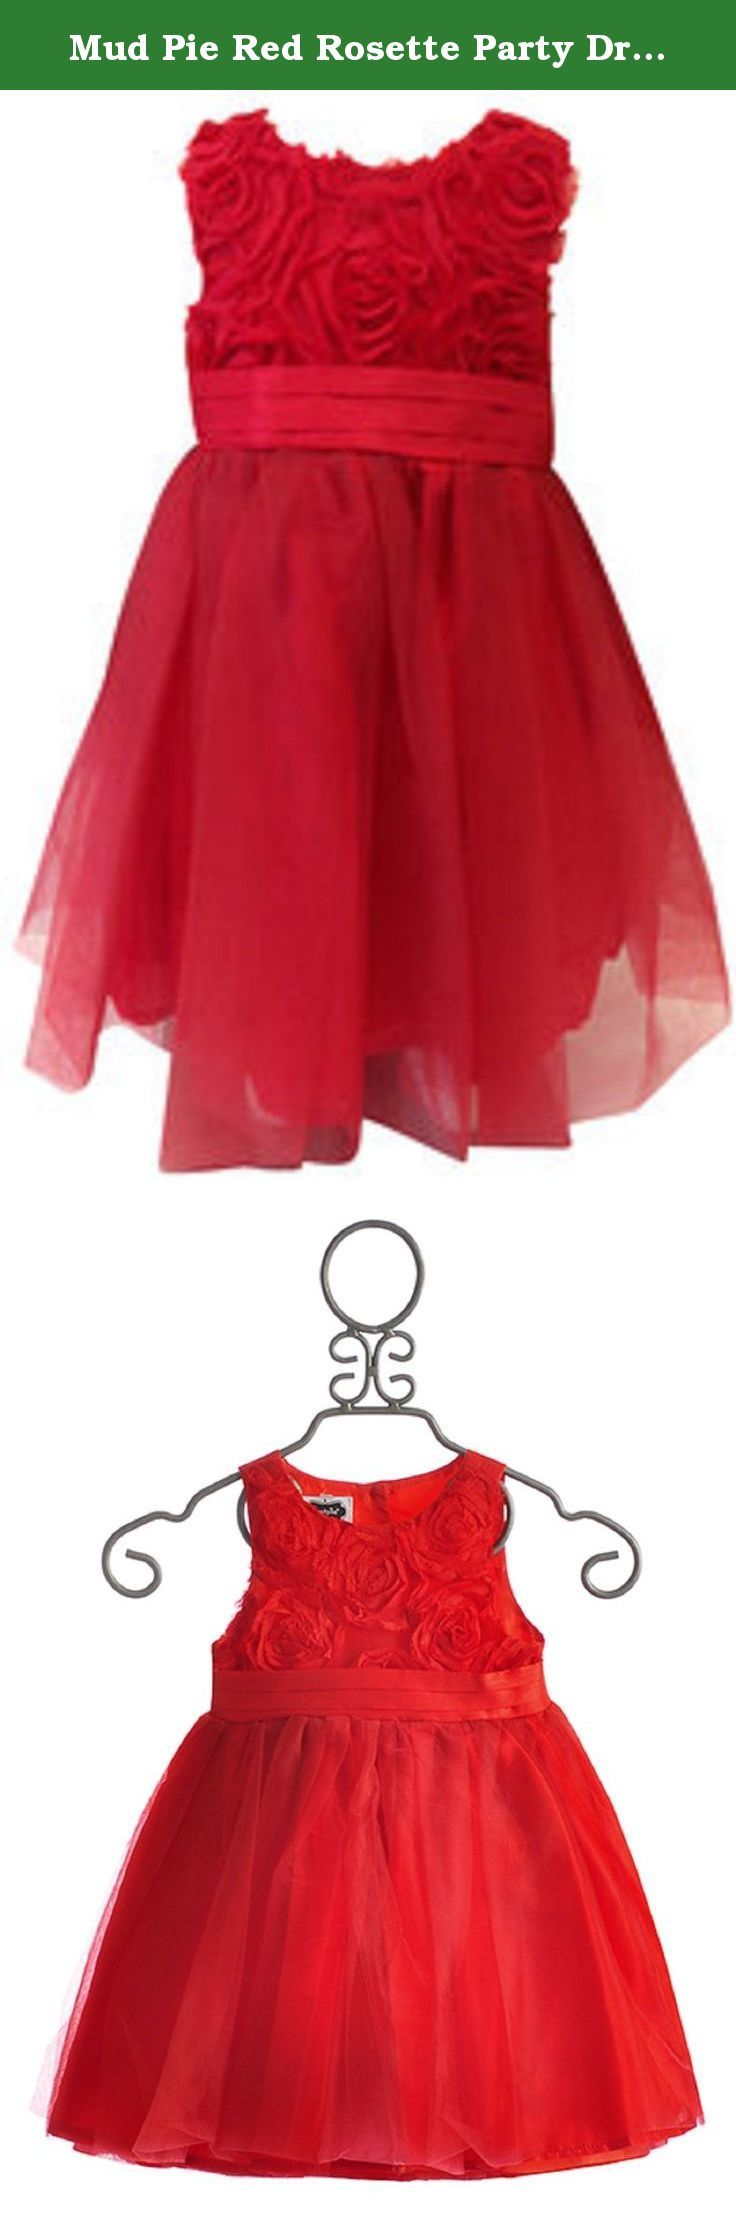 Mud Pie Red Rosette Party Dress Girls Special Occasion Holiday Dress 0-6 months. Stunning Red Holiday Dress or Girls Special Occasion Dress. This elegant faux silk dress has 3D shirred chiffon rosette bodice. Beautiful Girls Red Party Dress has cover back button detail and full tulle skirt with layers. Classic with a contemporary twist!.